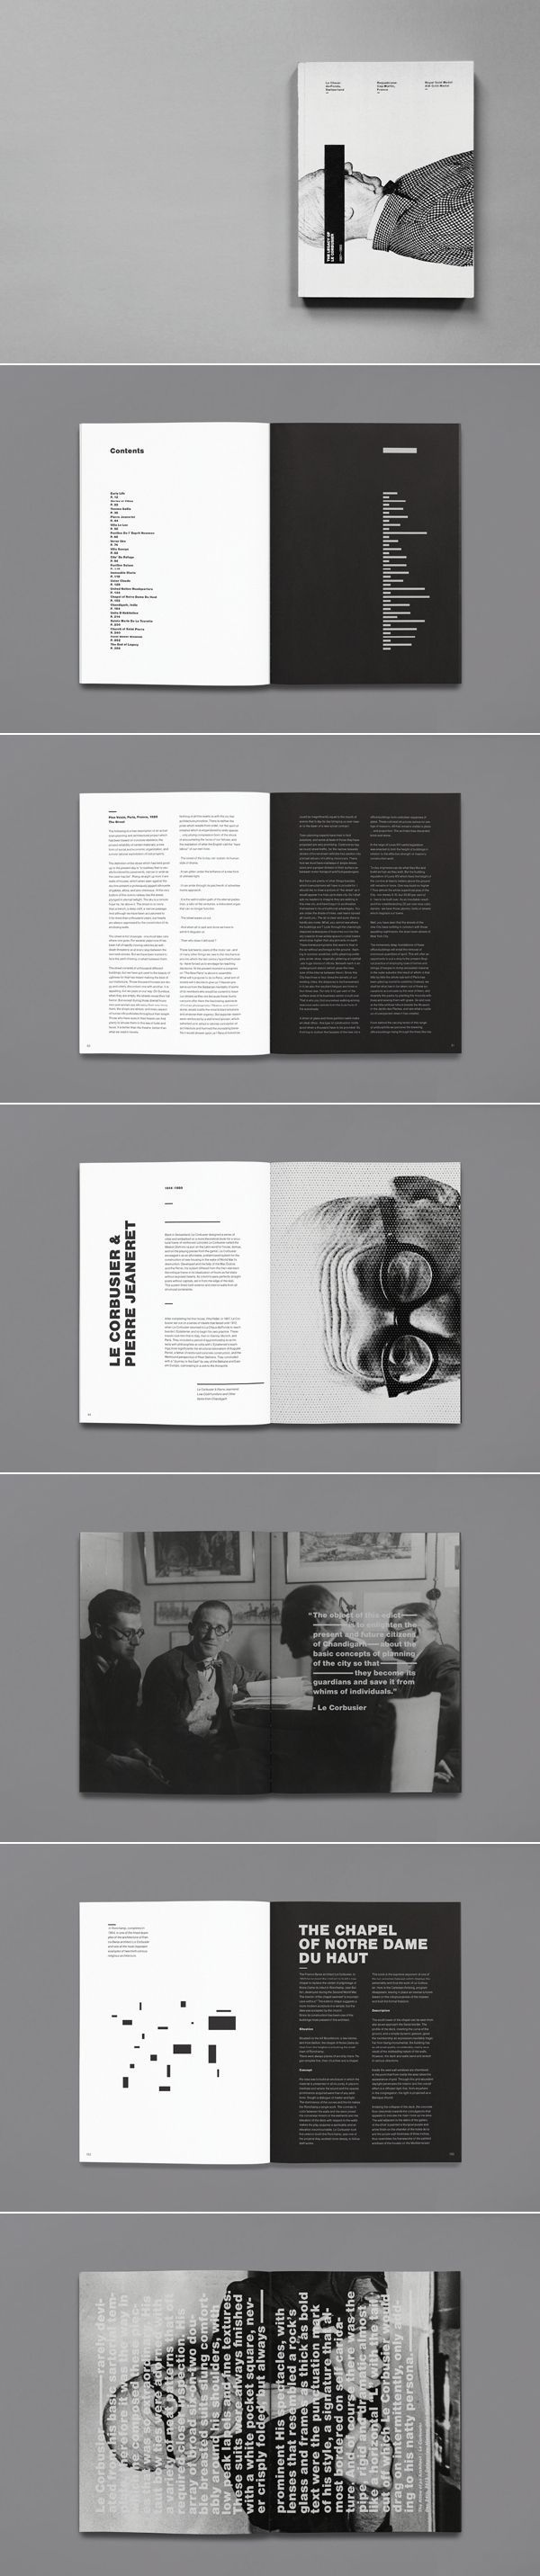 Alternate background colors to delineate different content. Doing it in black and white makes the contrast even bolder. | The Legacy of Le Corbusier